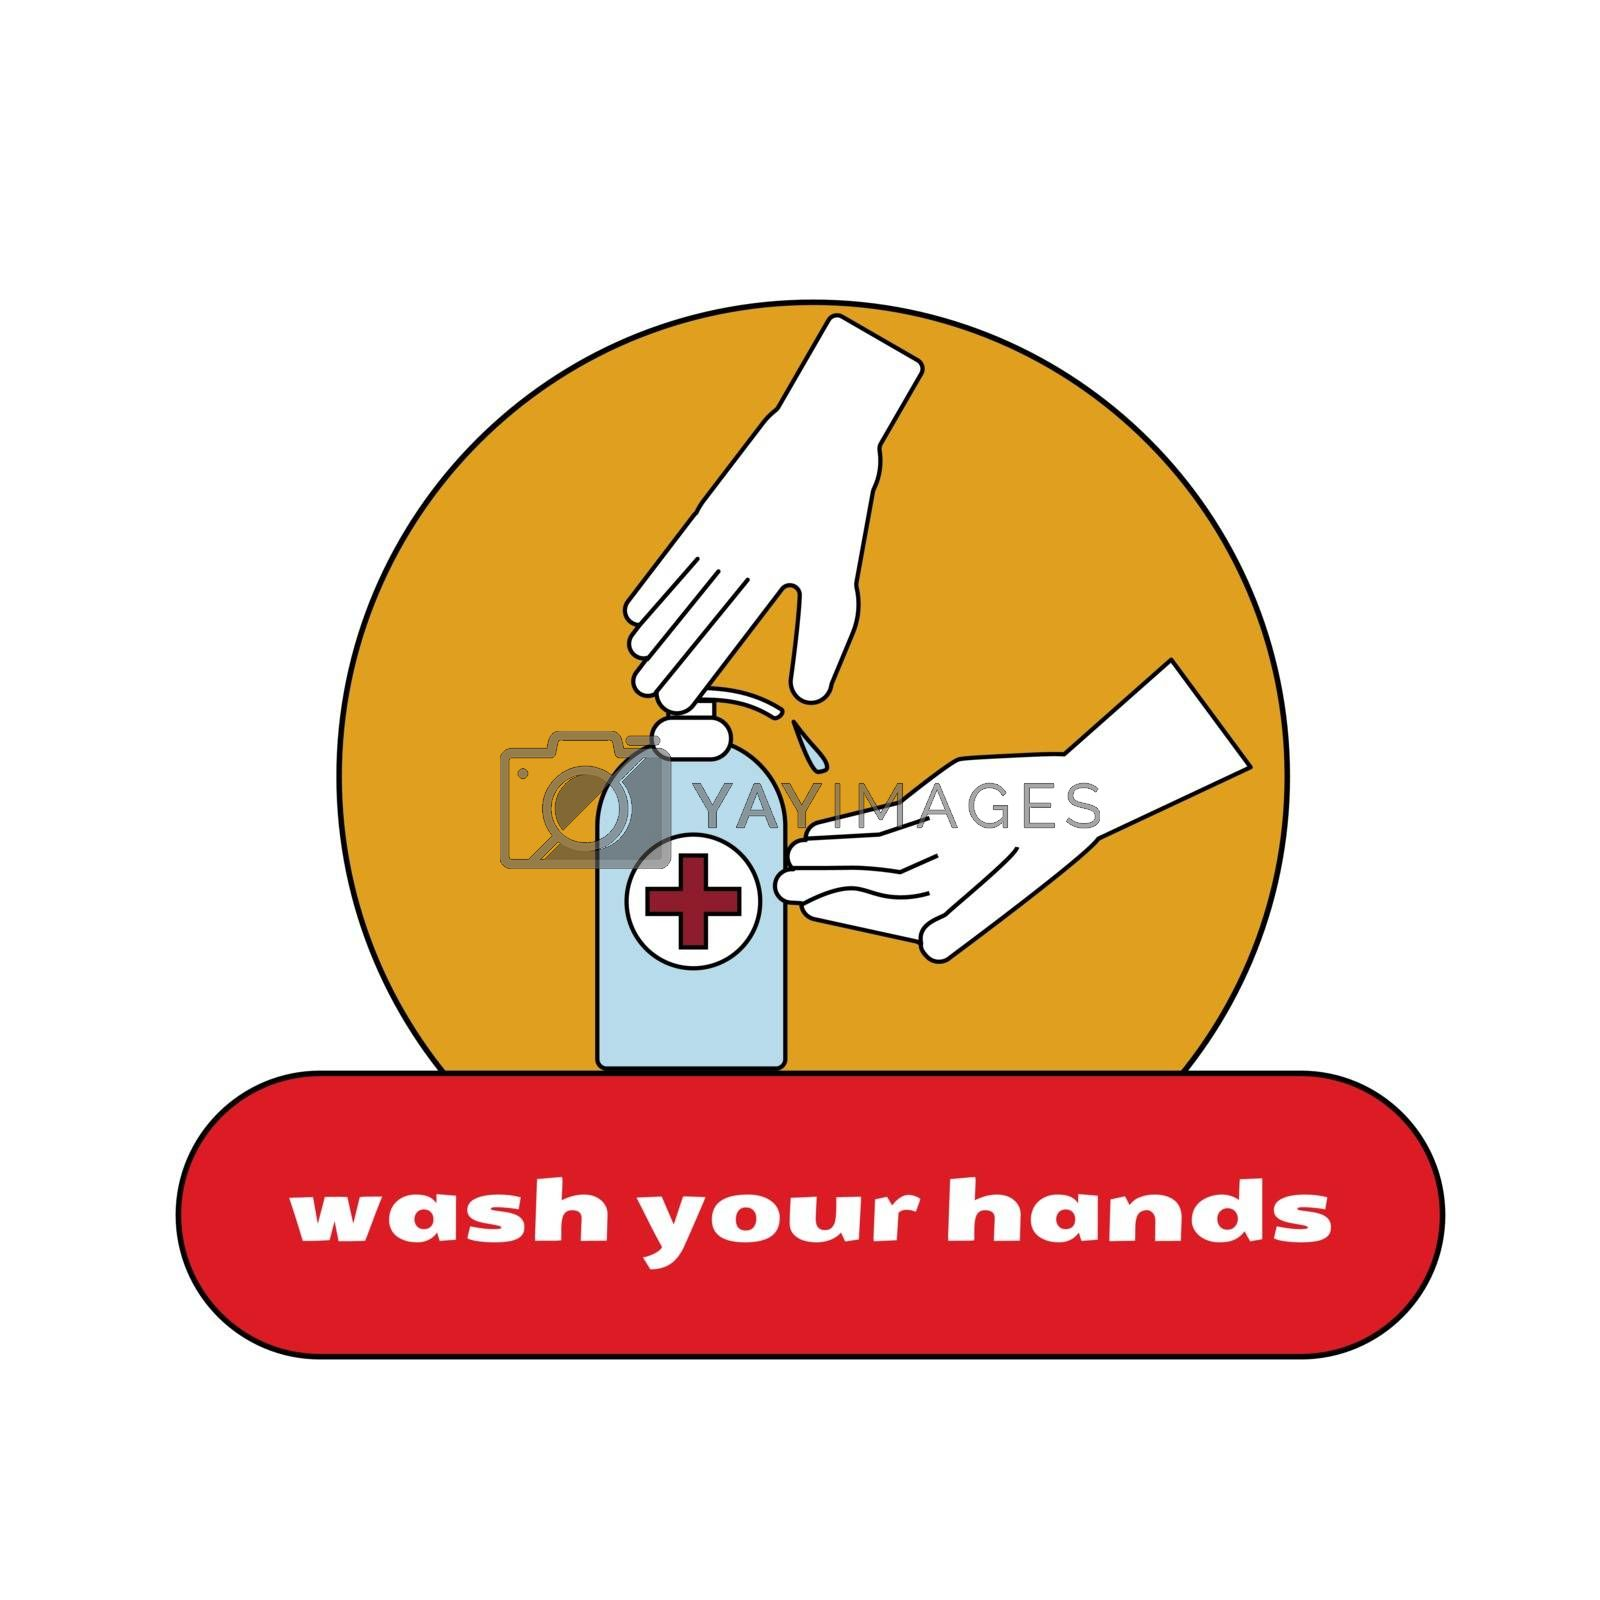 WASH YOUR HANDS in bathroom vector illustration template Washing hands rubbing with soap for coronavirus prevention to stop spreading diseases. Hygiene is important. by zaryov